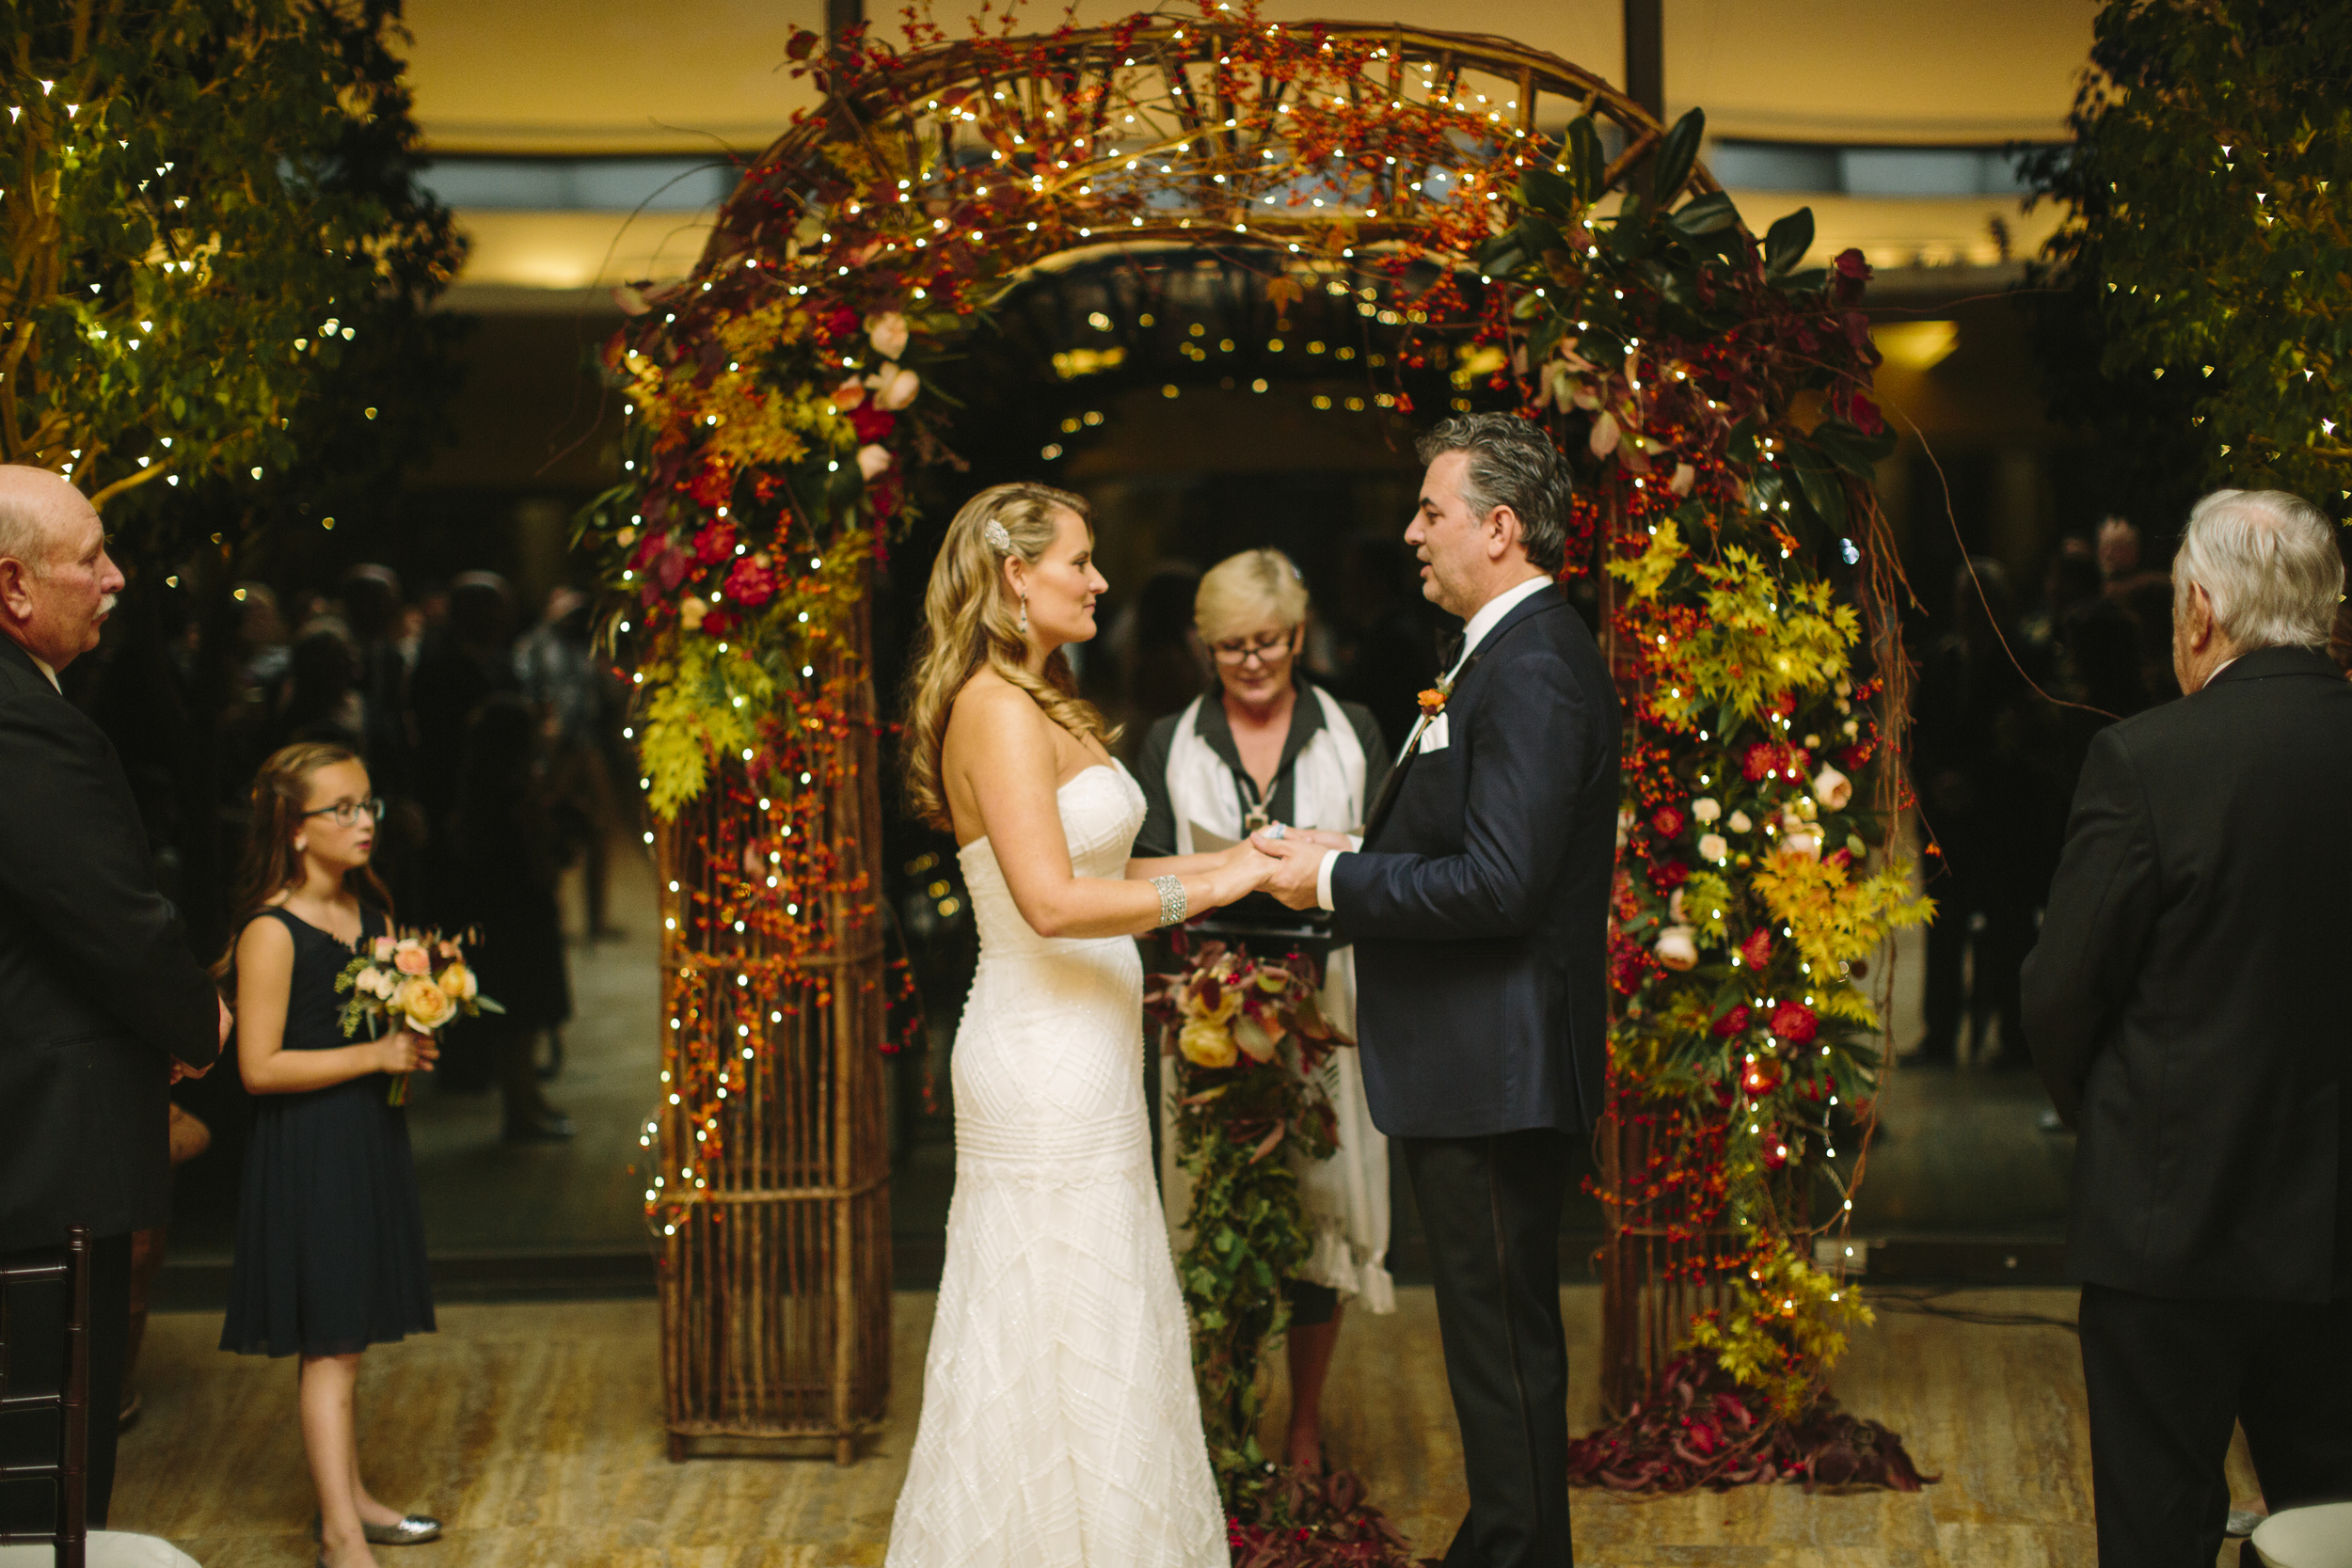 An evening ceremony darkened the backdrop, letting the arch and fairy lights really pop as they framed the couple.